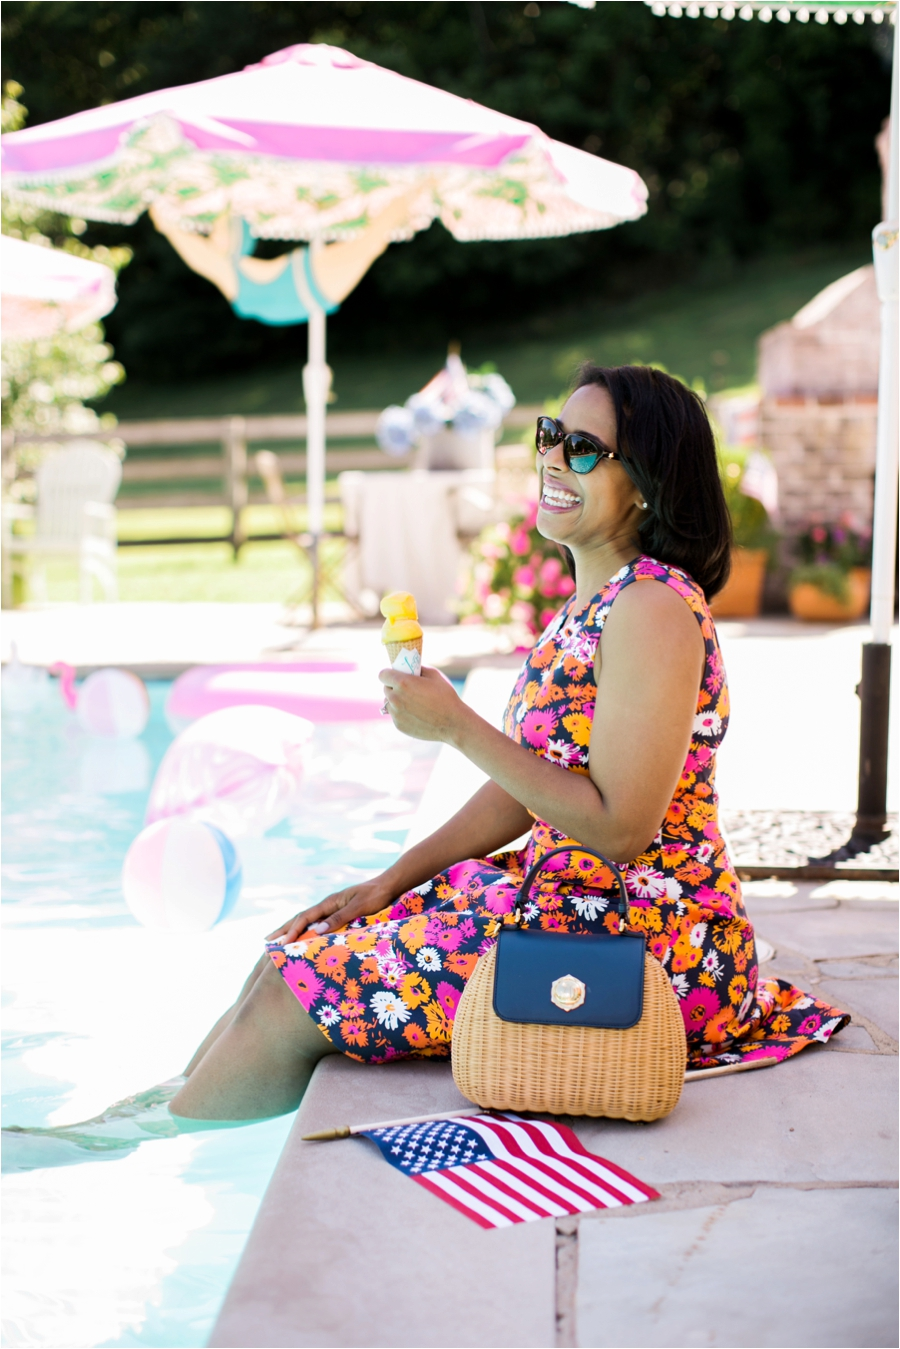 draper james summer pool party editorial by charlottesville photographer, Amy Nicole Photography_0030